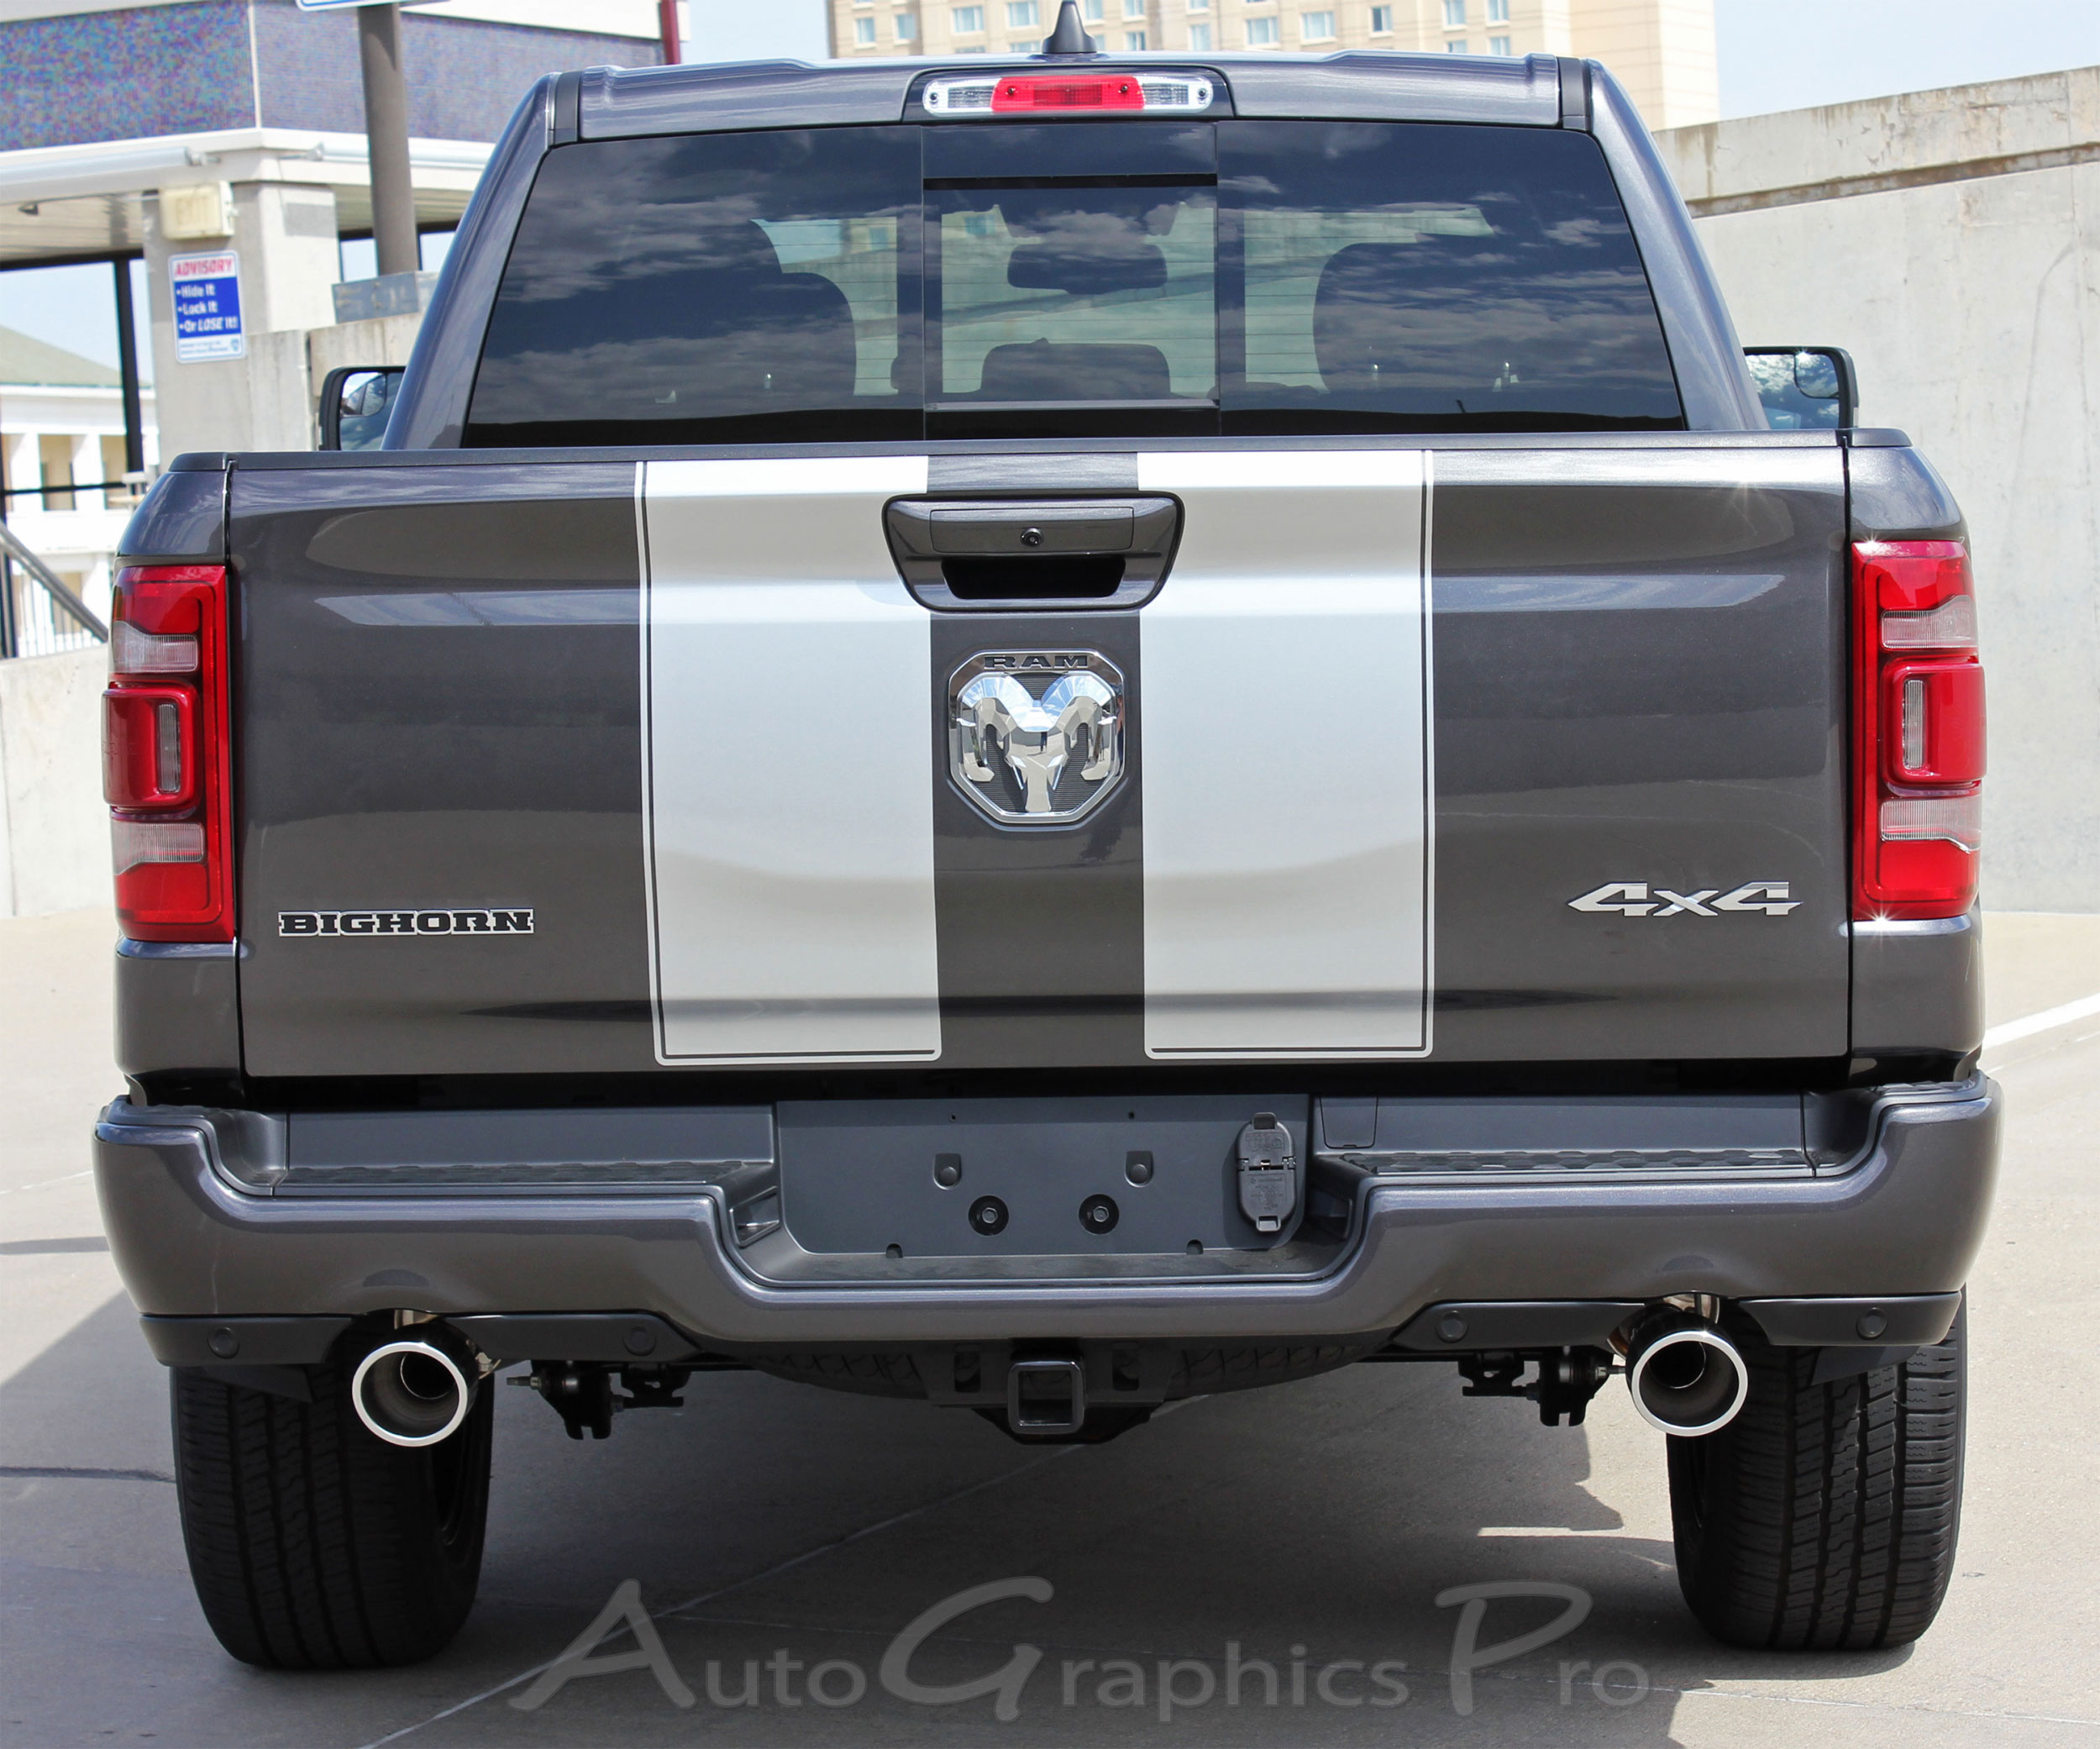 2019 2020 Dodge Ram Racing Stripes RALLY Hood Decals Tailgate Truck Vinyl  Graphic Kit